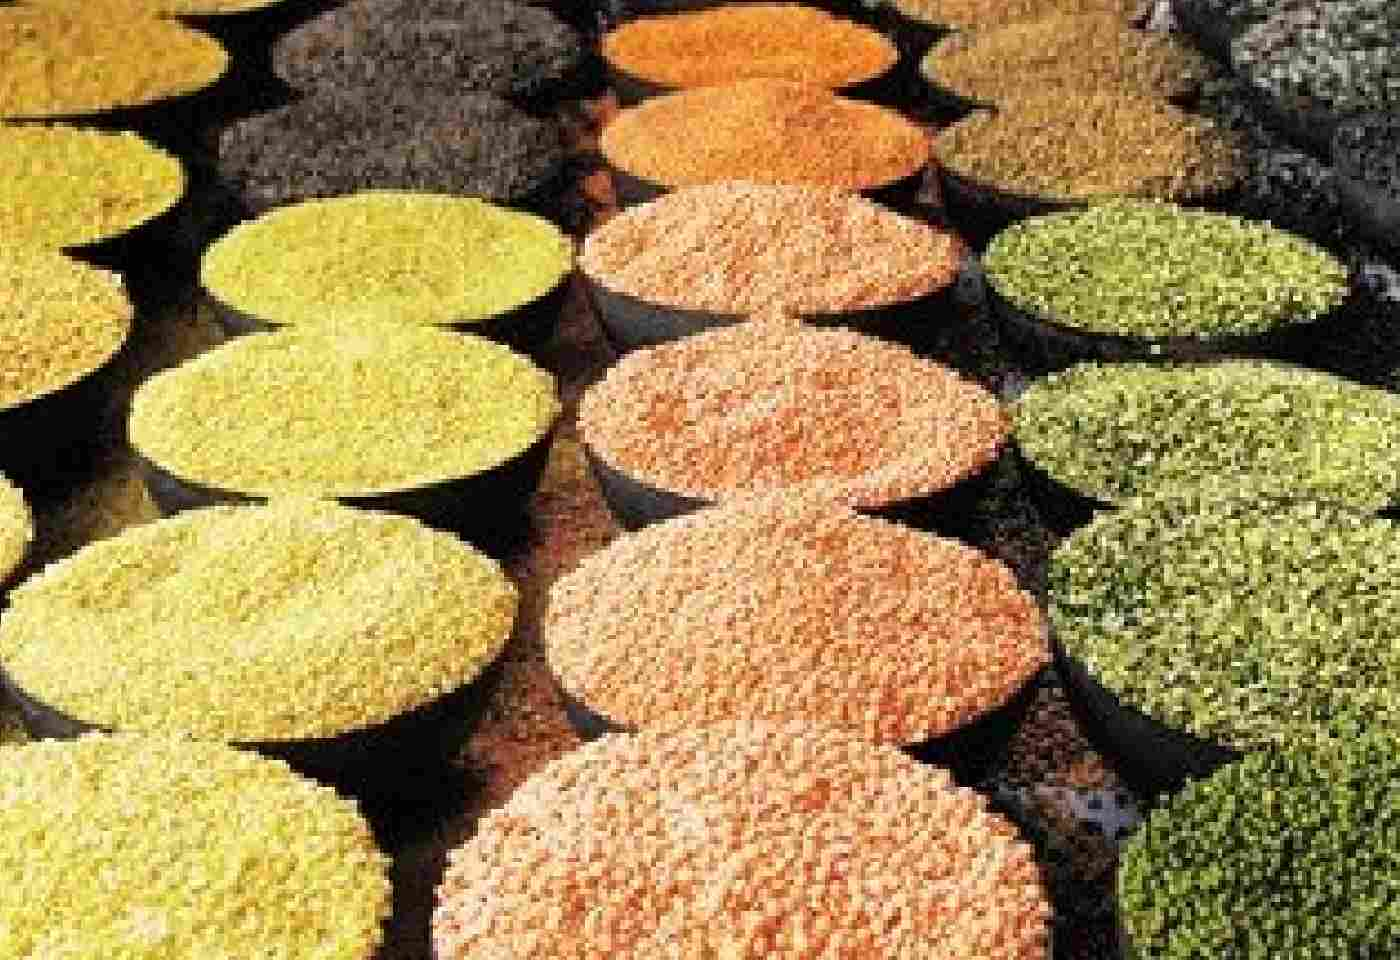 Central Govt Allows free import of Three types of pulses Ahead Of New Kharif Season